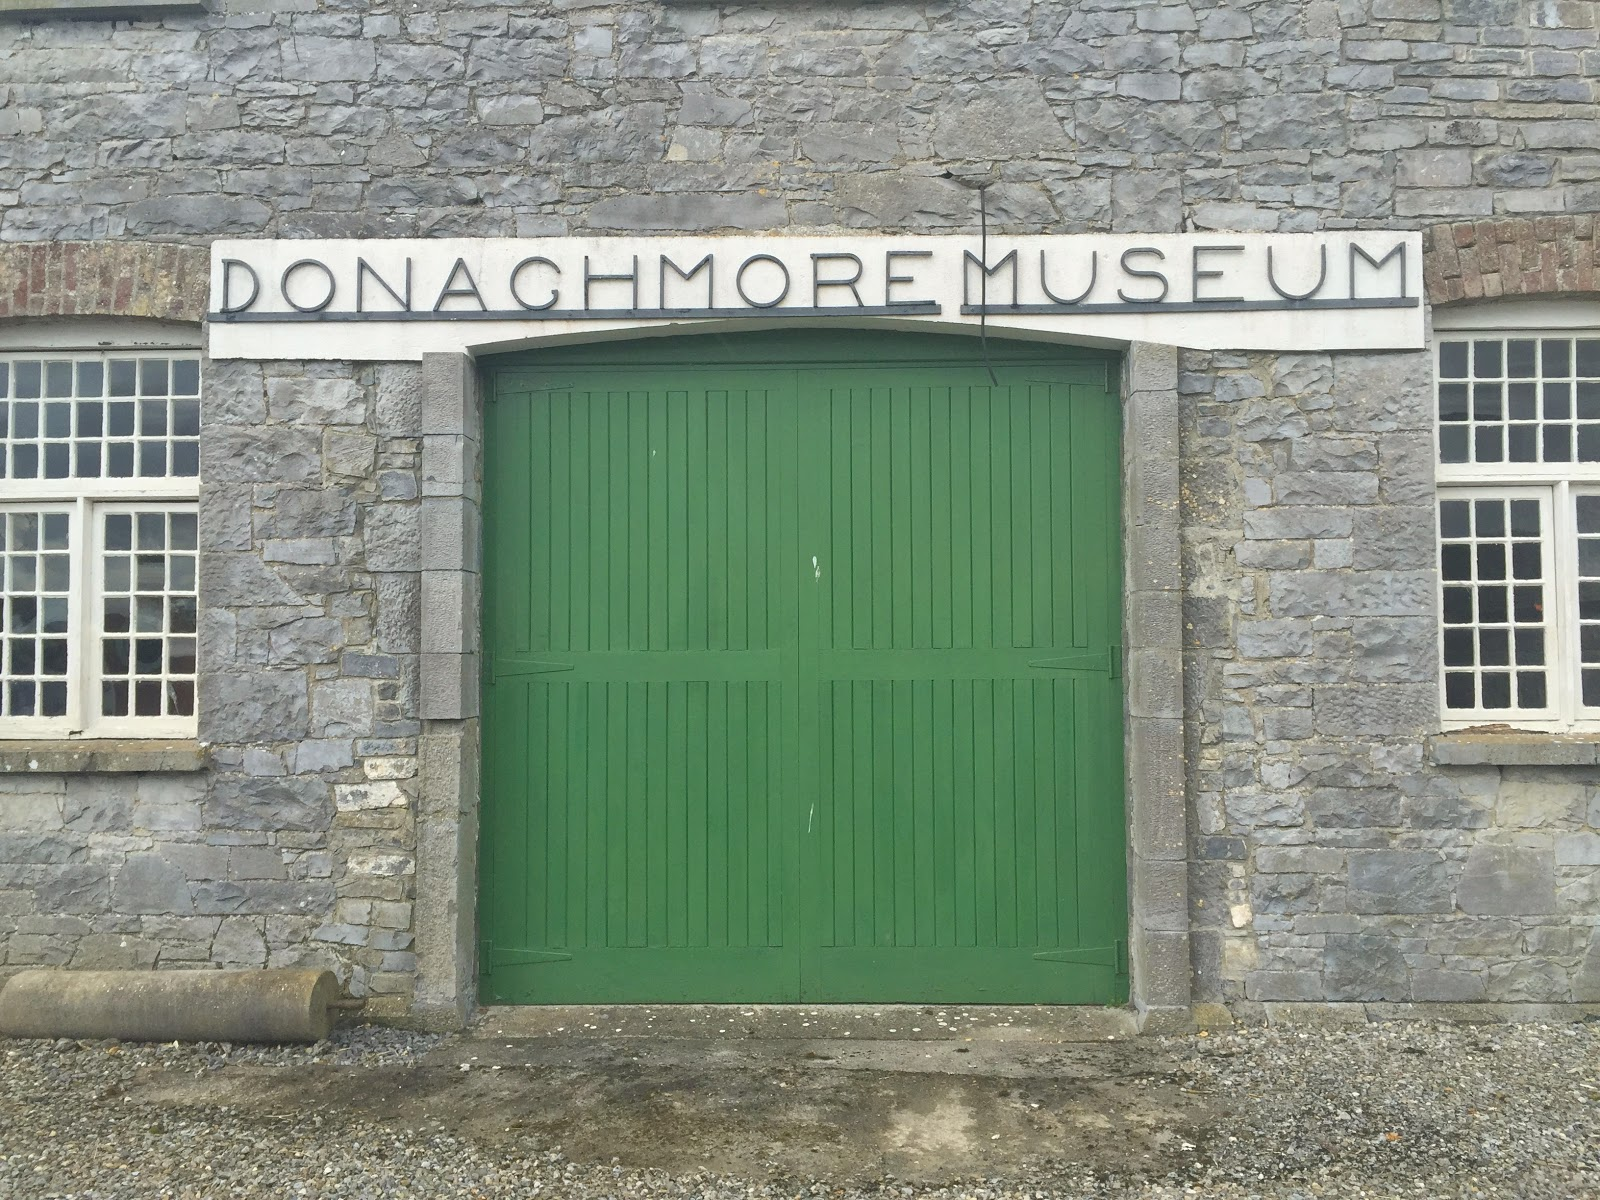 donaghmore famine workhouse